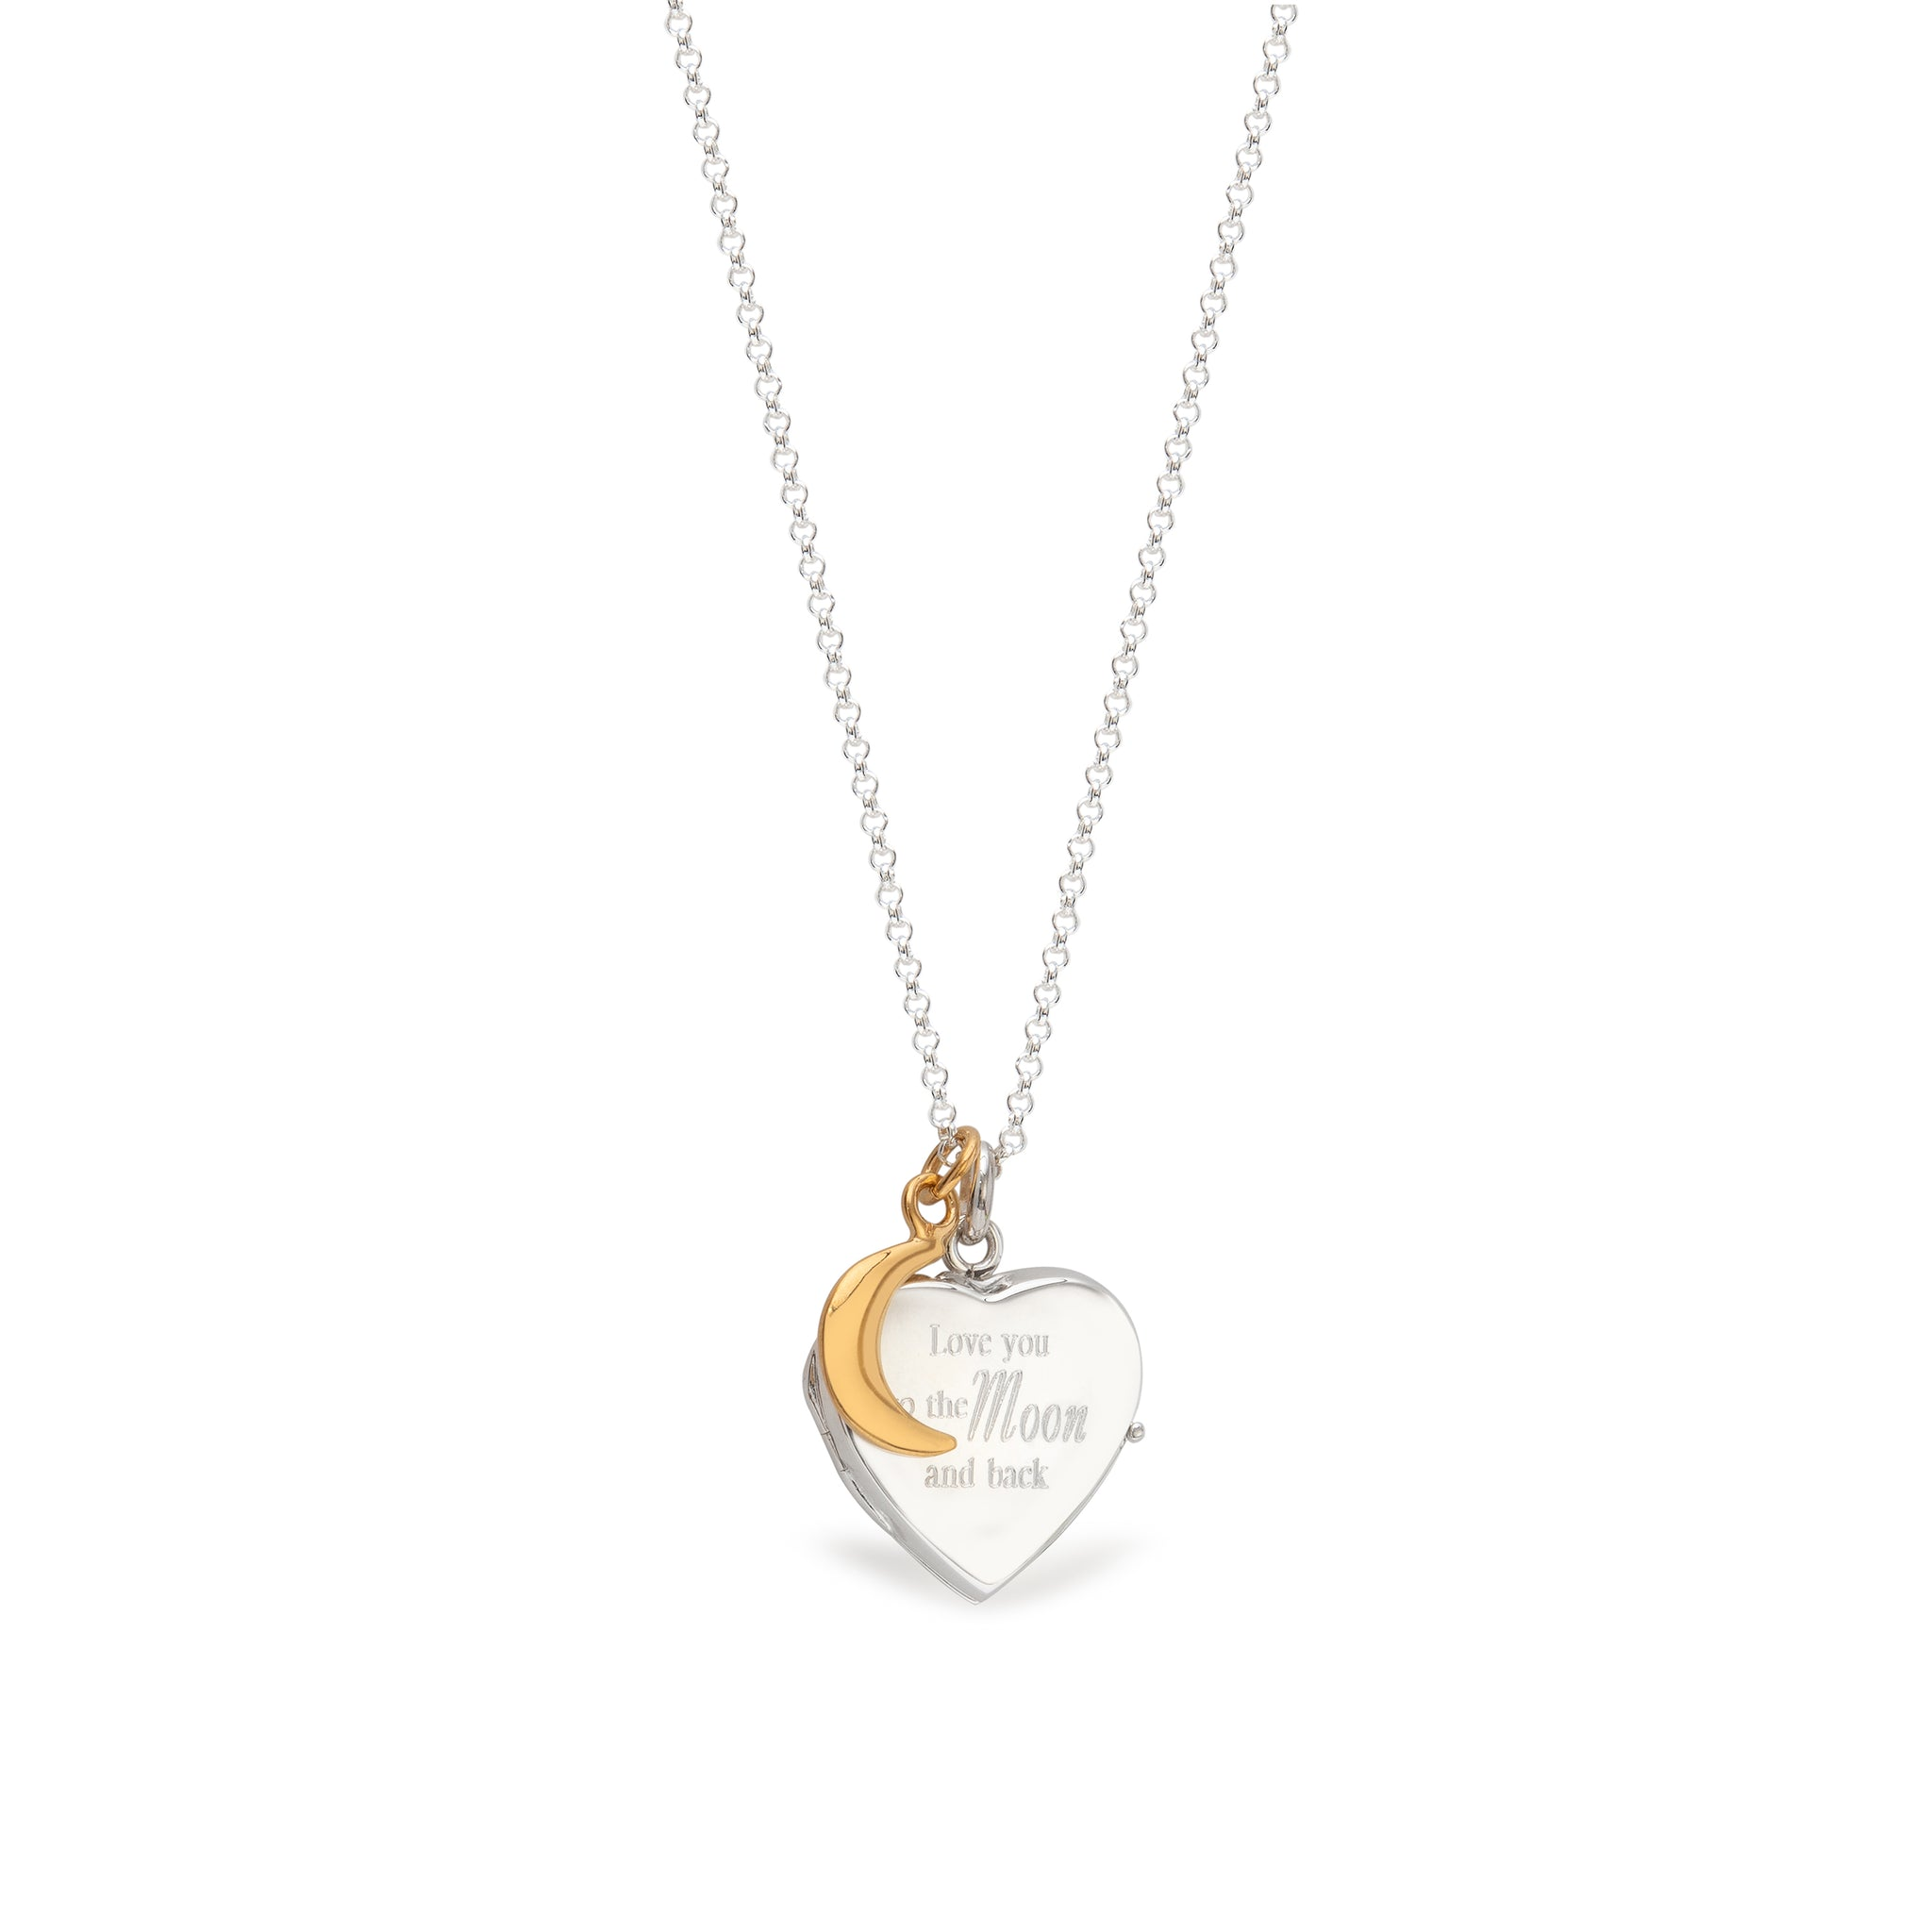 Personalised 'Love you to the moon and back' Heart Locket Necklace Sterling Silver